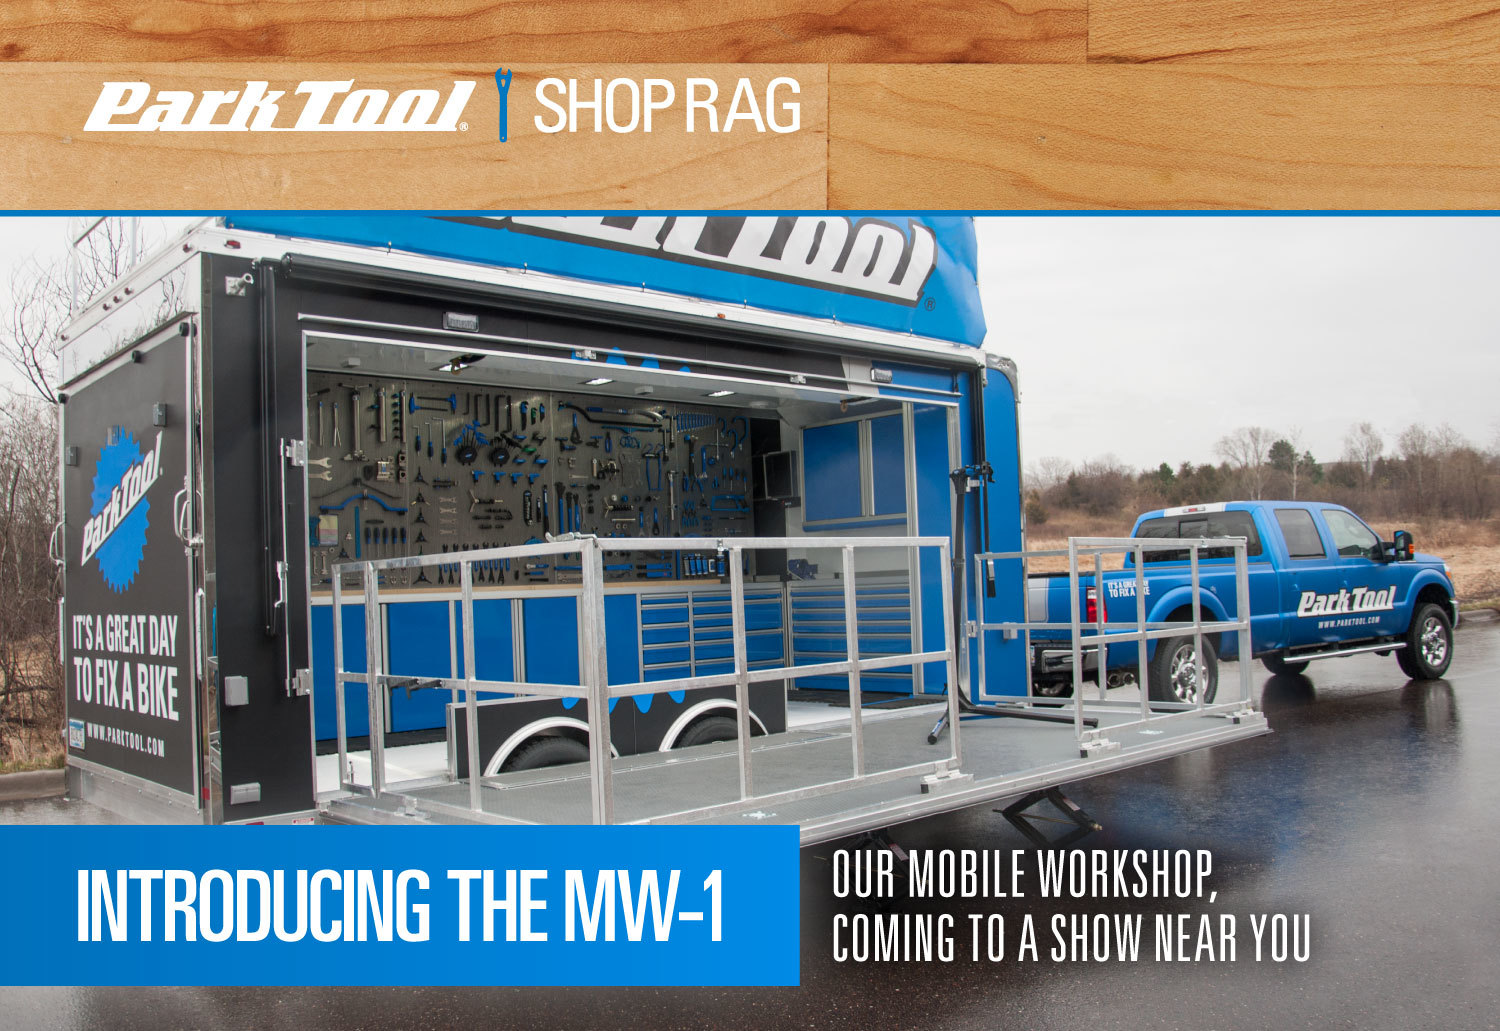 Park Tool Shop Rag introducing the MW-1 Mobile workshop